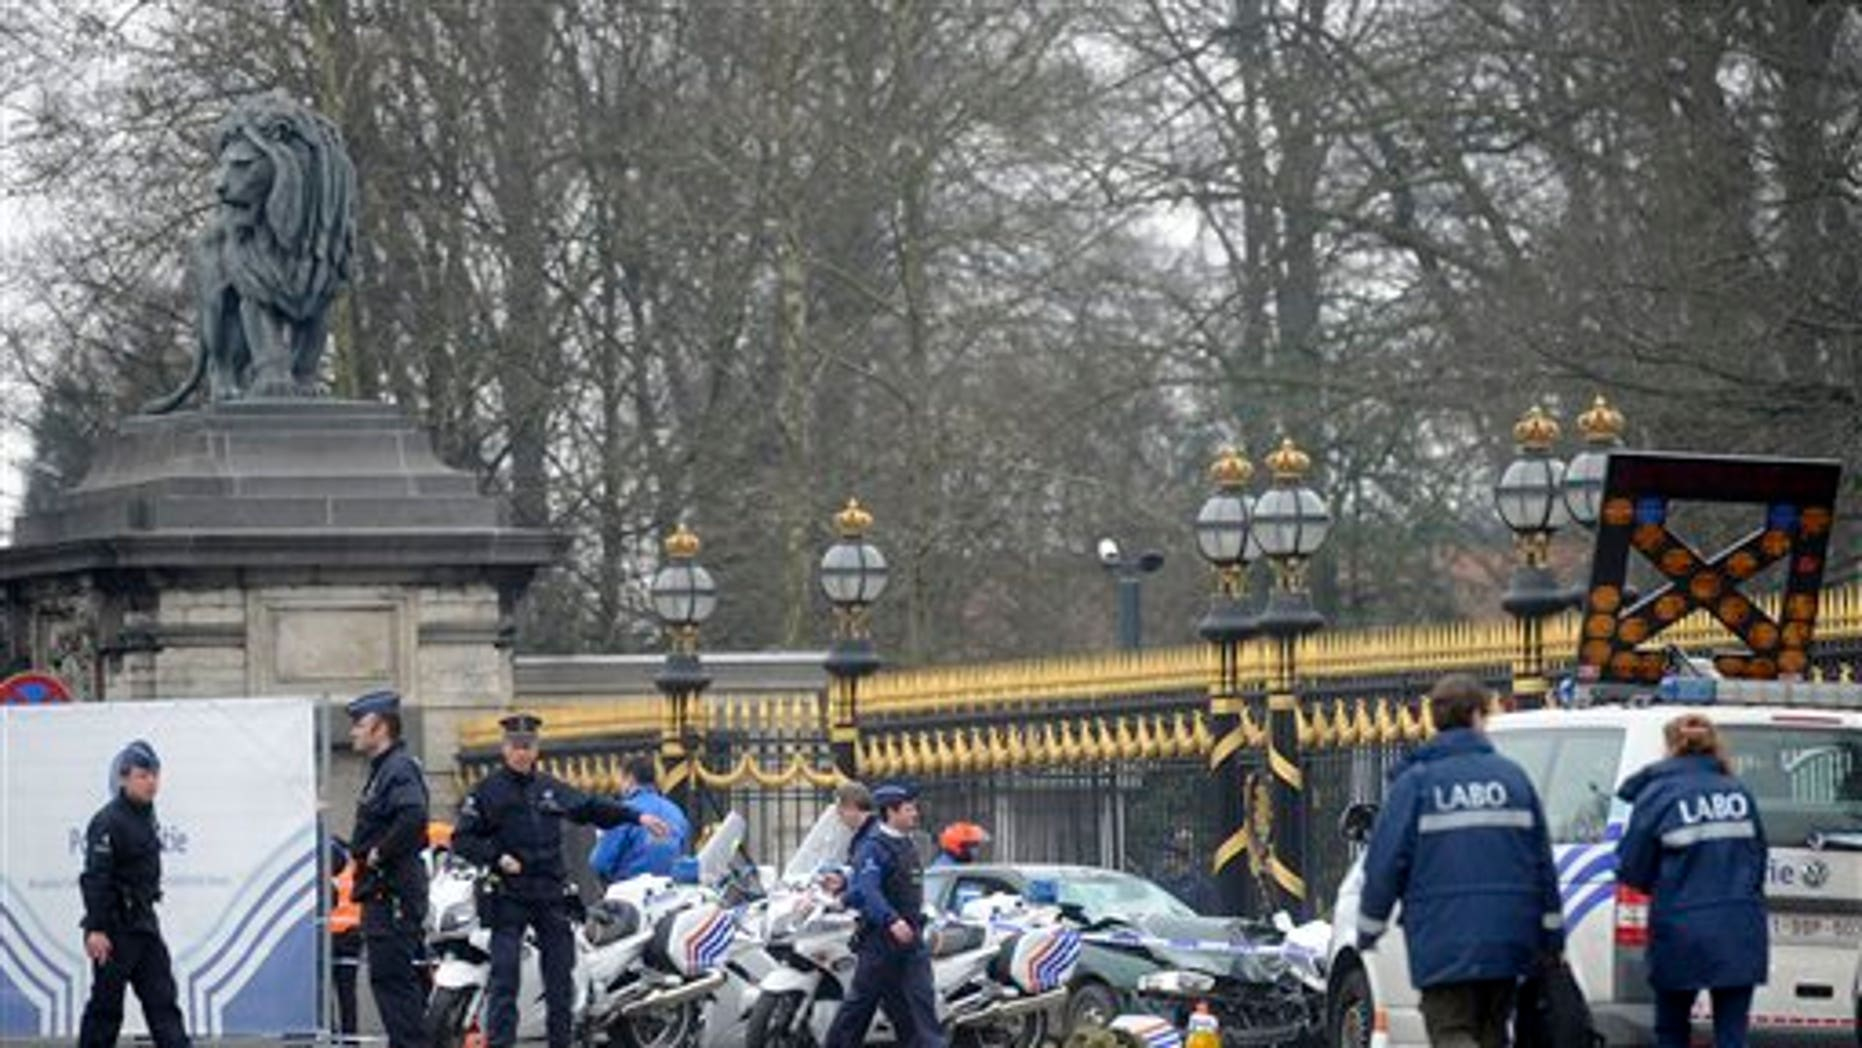 March 13: Police stand at the scene of an accident in front of the Royal Palace in Laeken, Belgium.